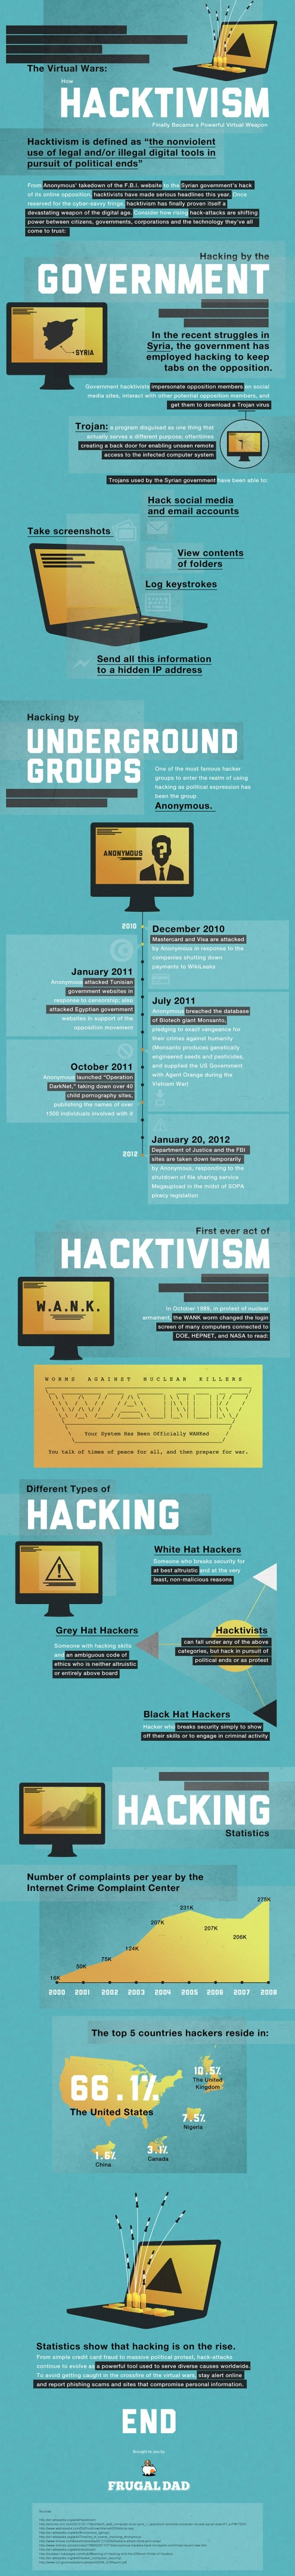 The History of Hacktivism